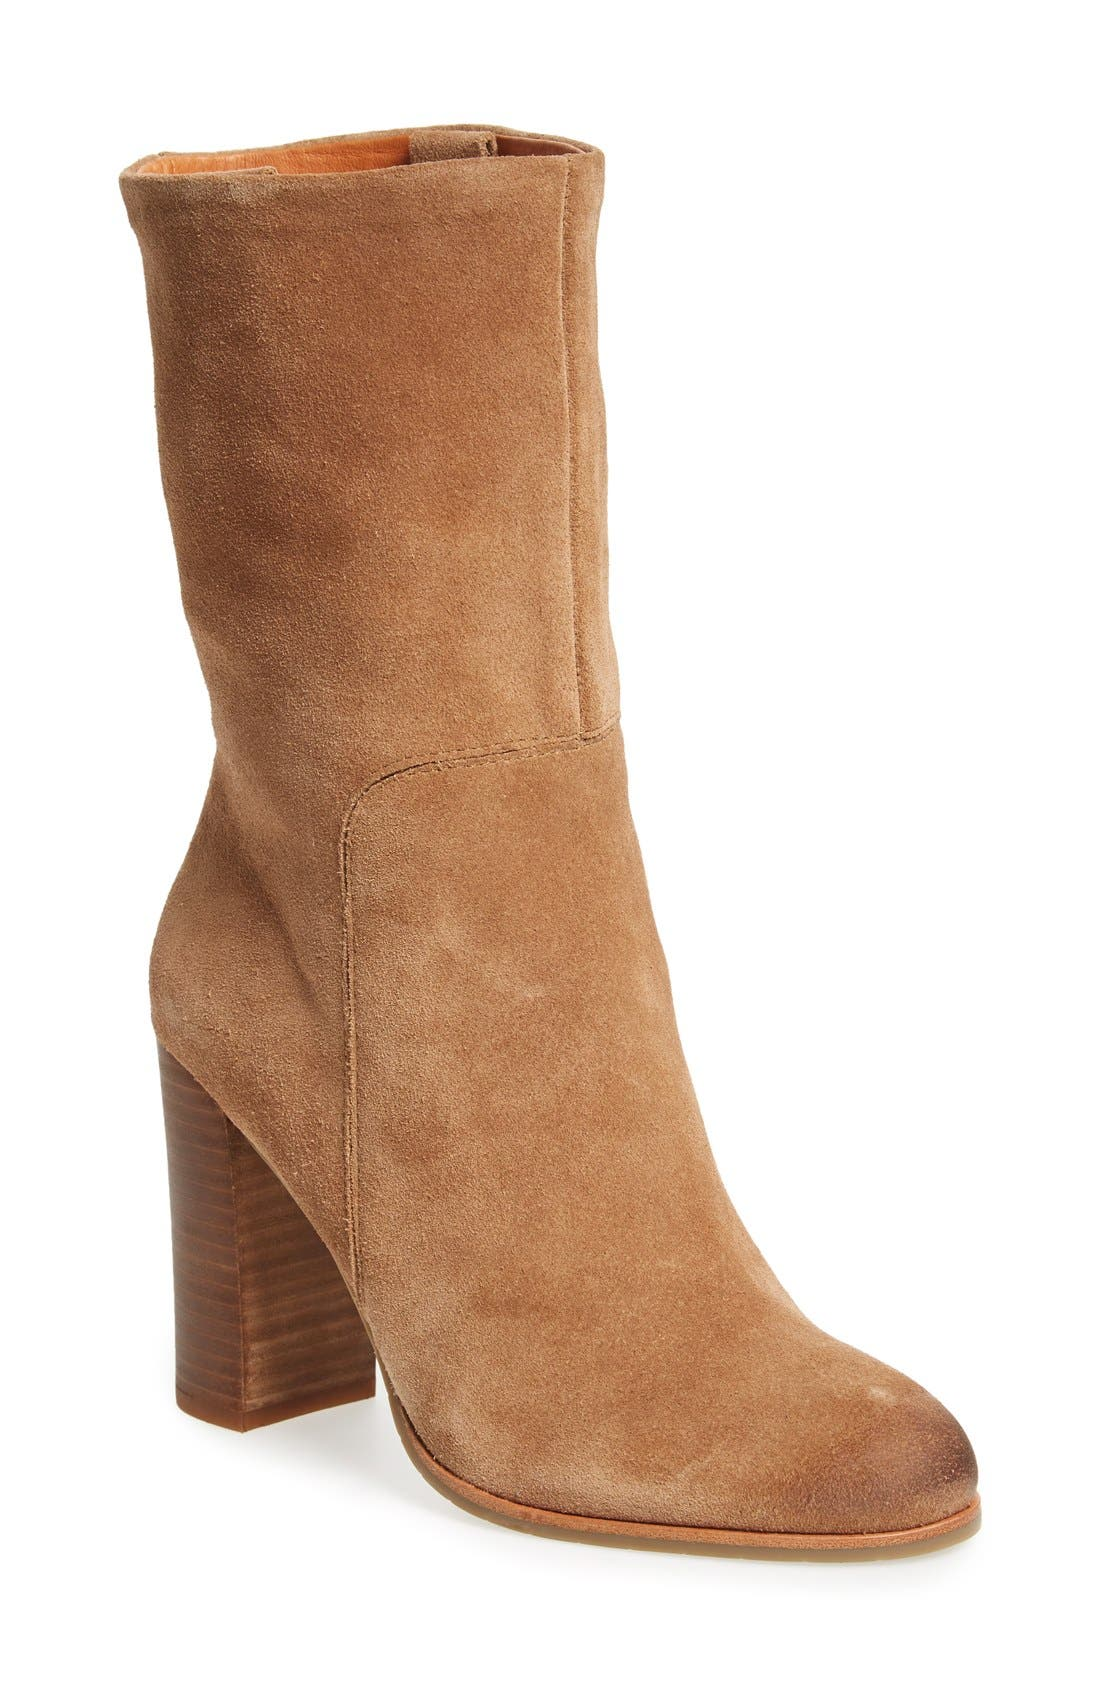 'Jenni' Round Toe Boot,                         Main,                         color, Desert Suede